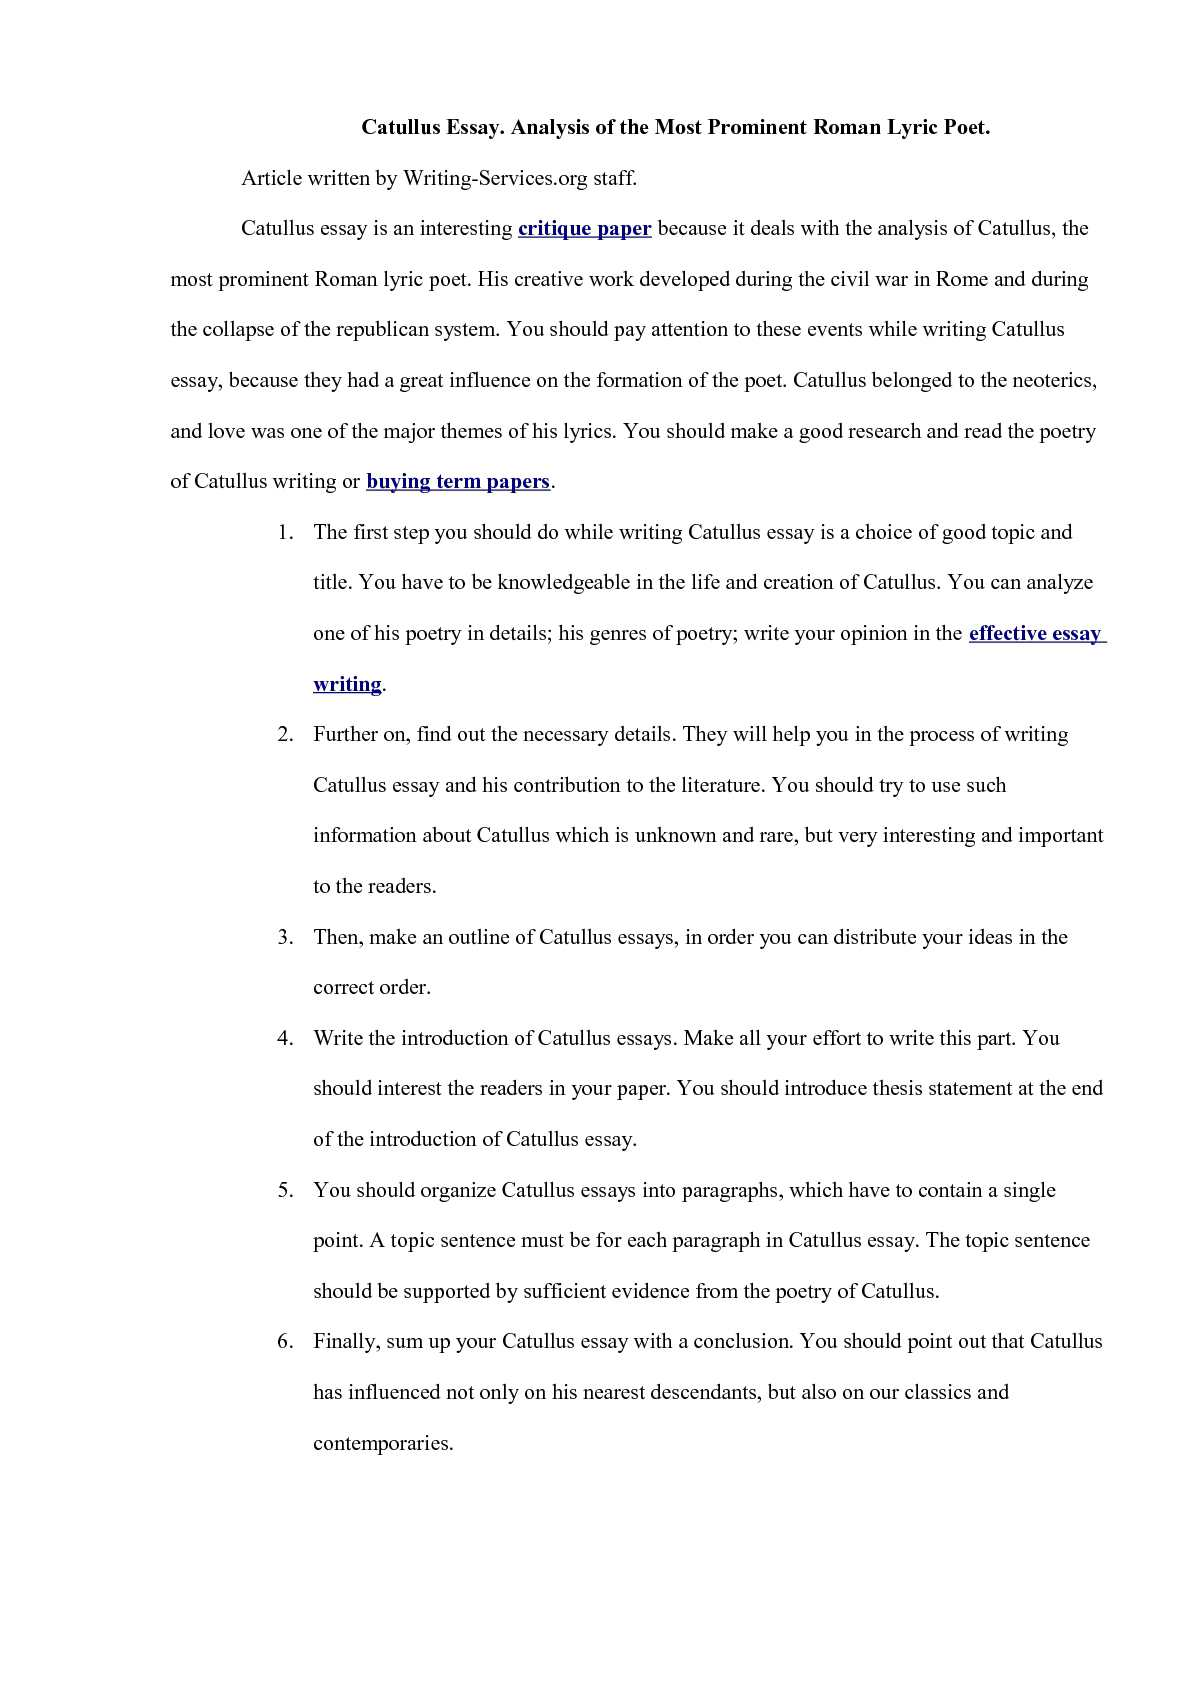 inductive essay inductive essay examples deductive essay chronological order essay exercises